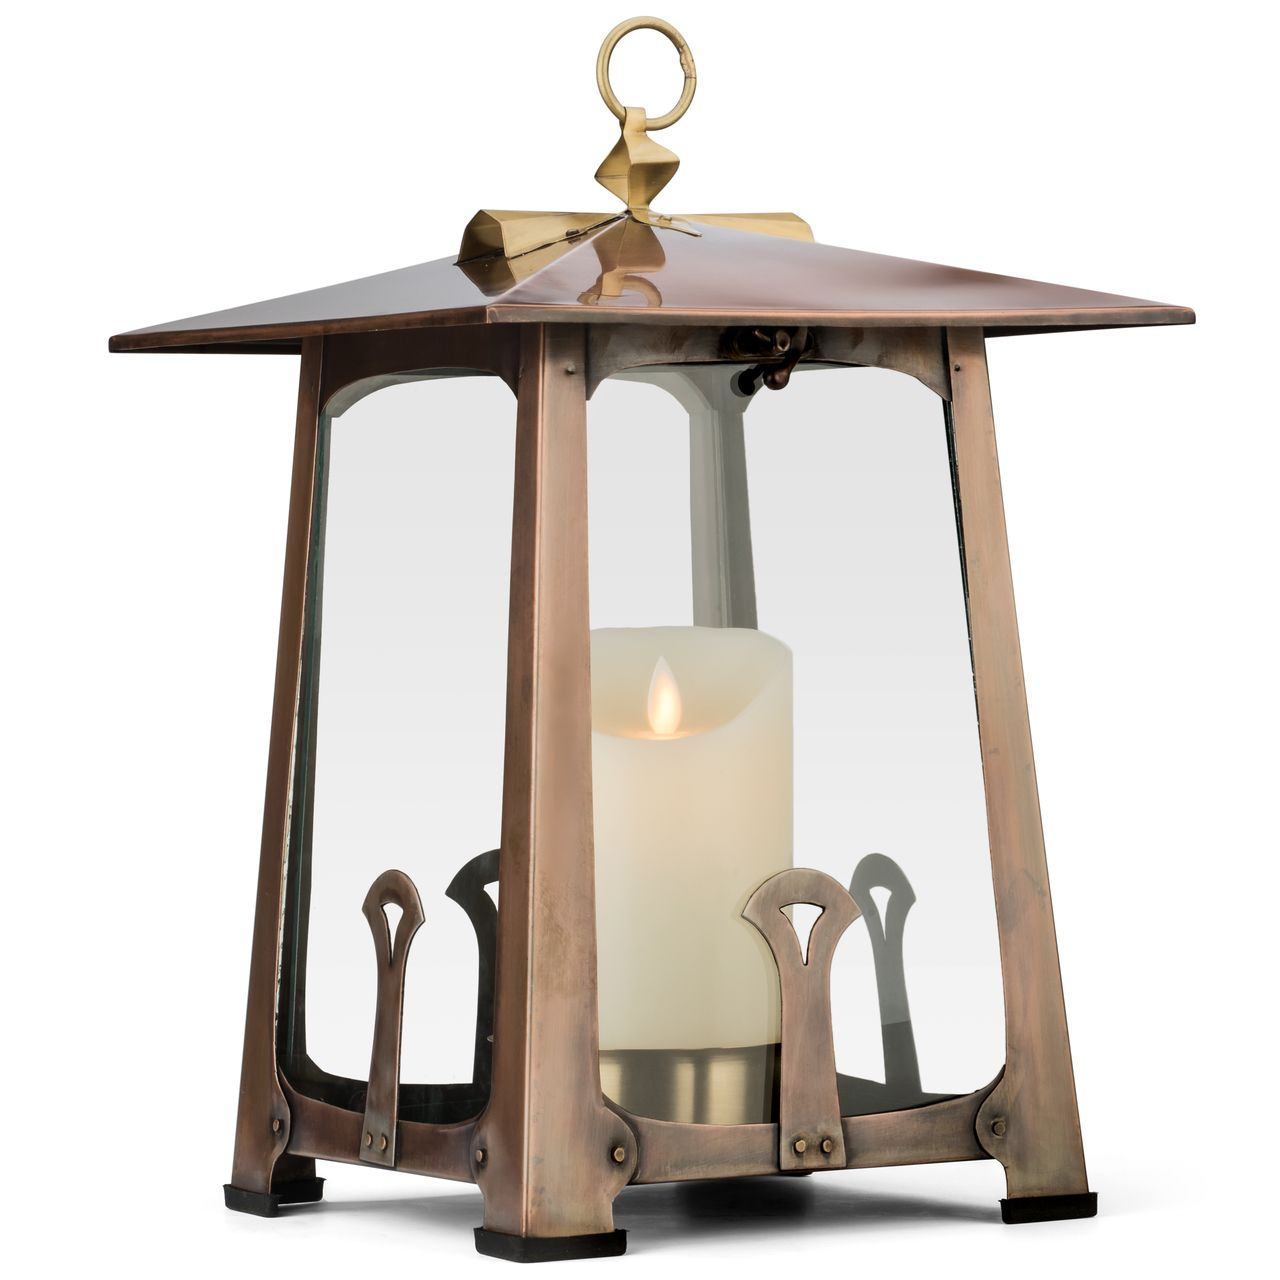 H Potter Craftsman Candle Lantern Decorative Table Top Indoor Outdoor Patio  Candle Holder Large   H POTTER